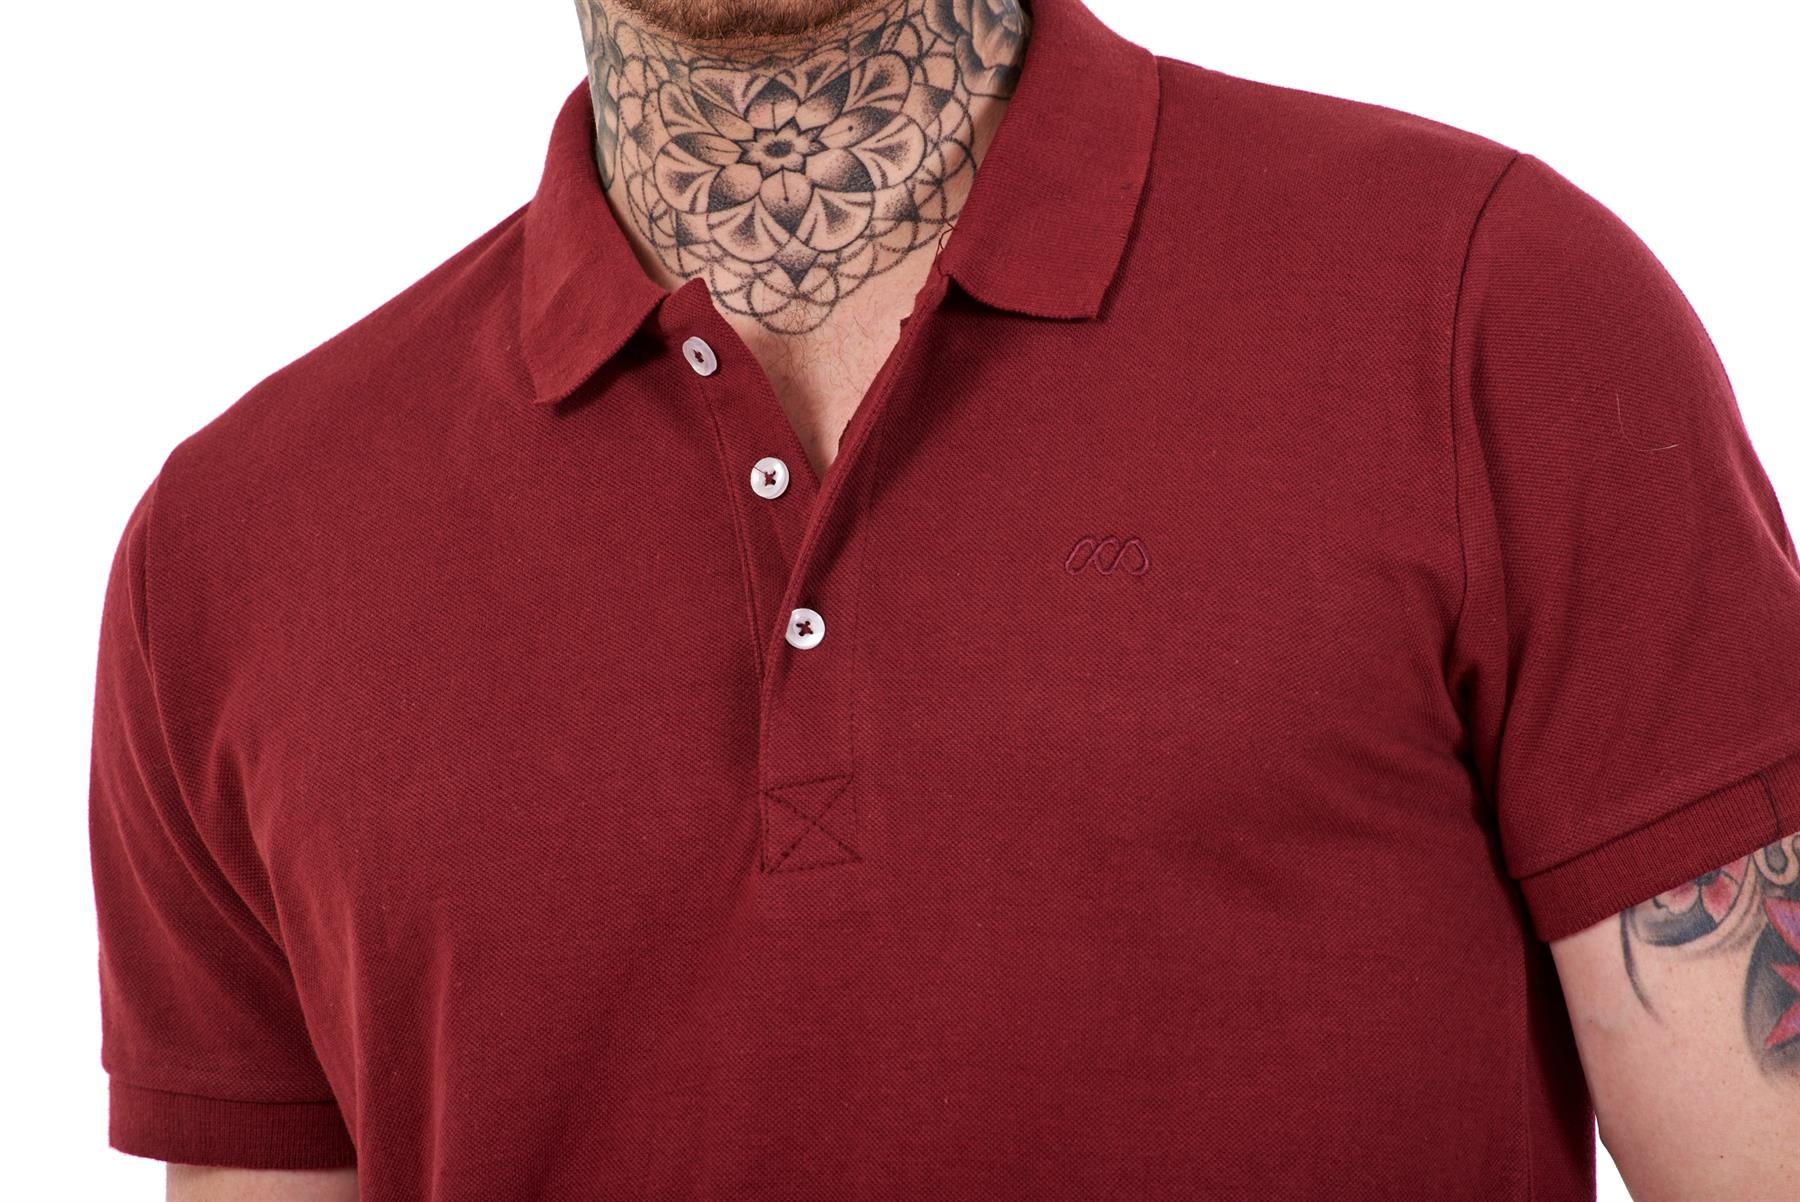 Mens-Plain-Solid-Polo-Cotton-T-Shirts-Regular-fit-Casual-Formal-Shirt-Top-M-XXL thumbnail 10